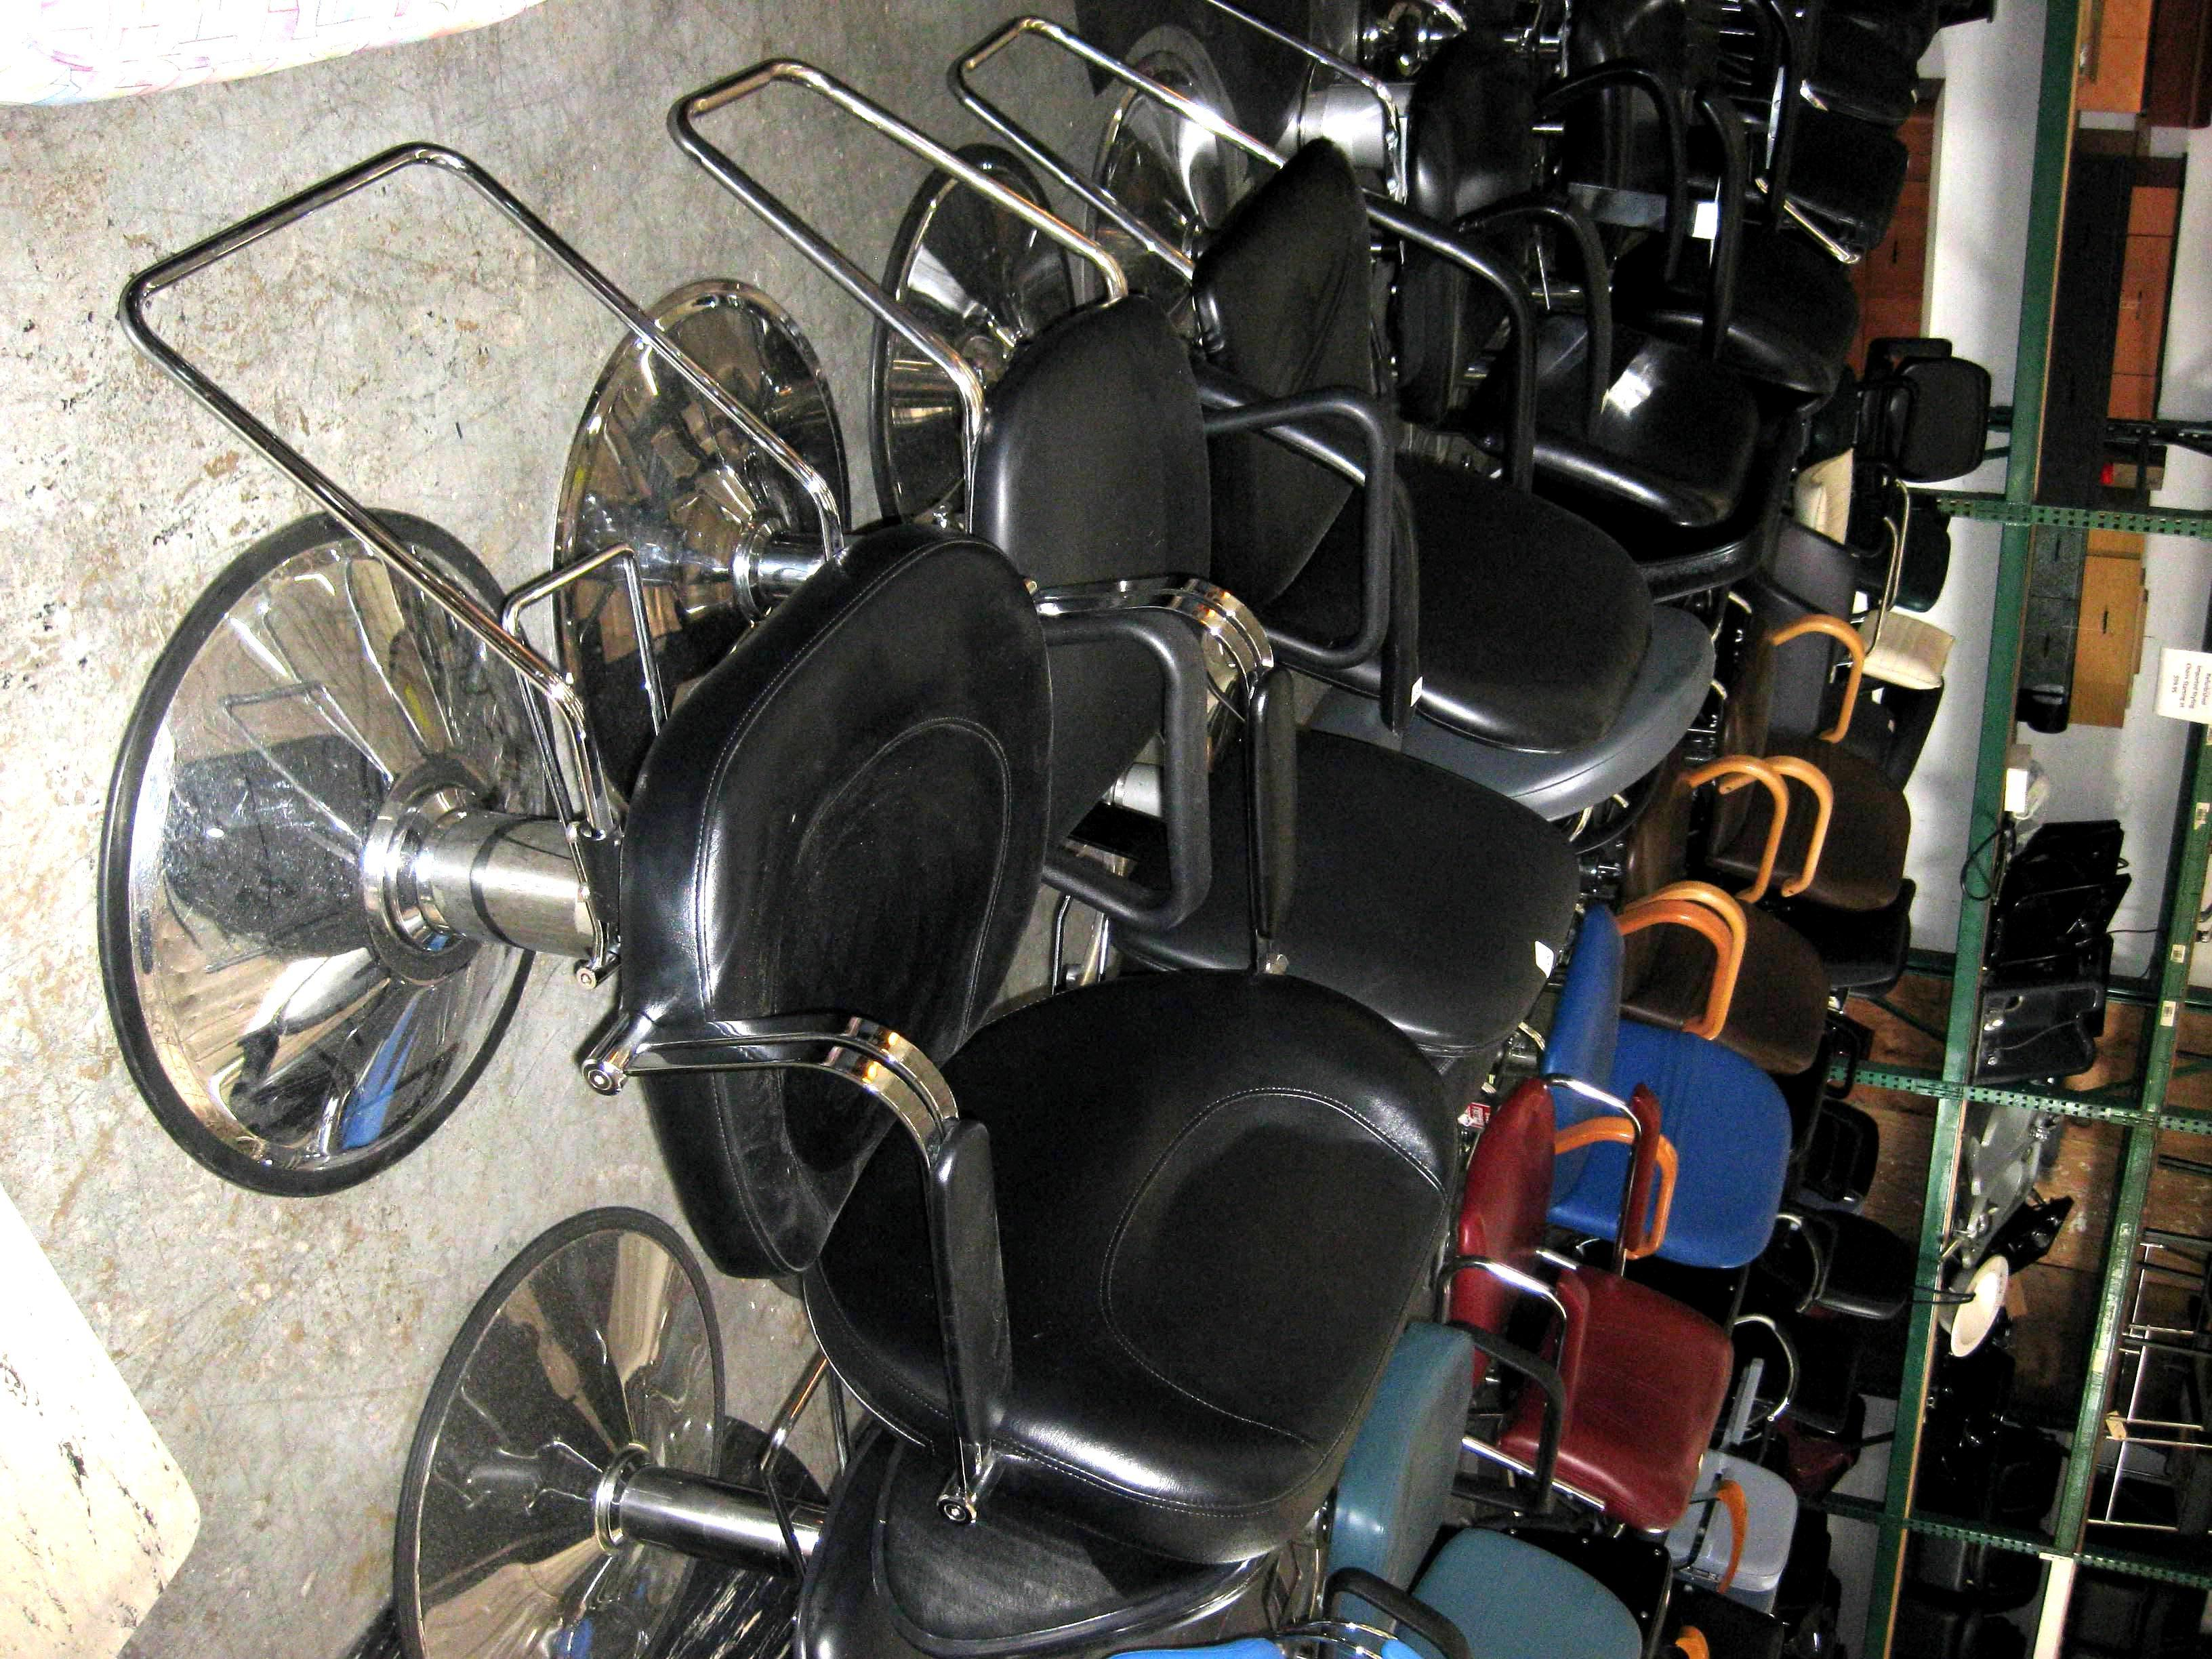 styling chairs for sale wheel chair dogs used equipment most furniture is not shippable